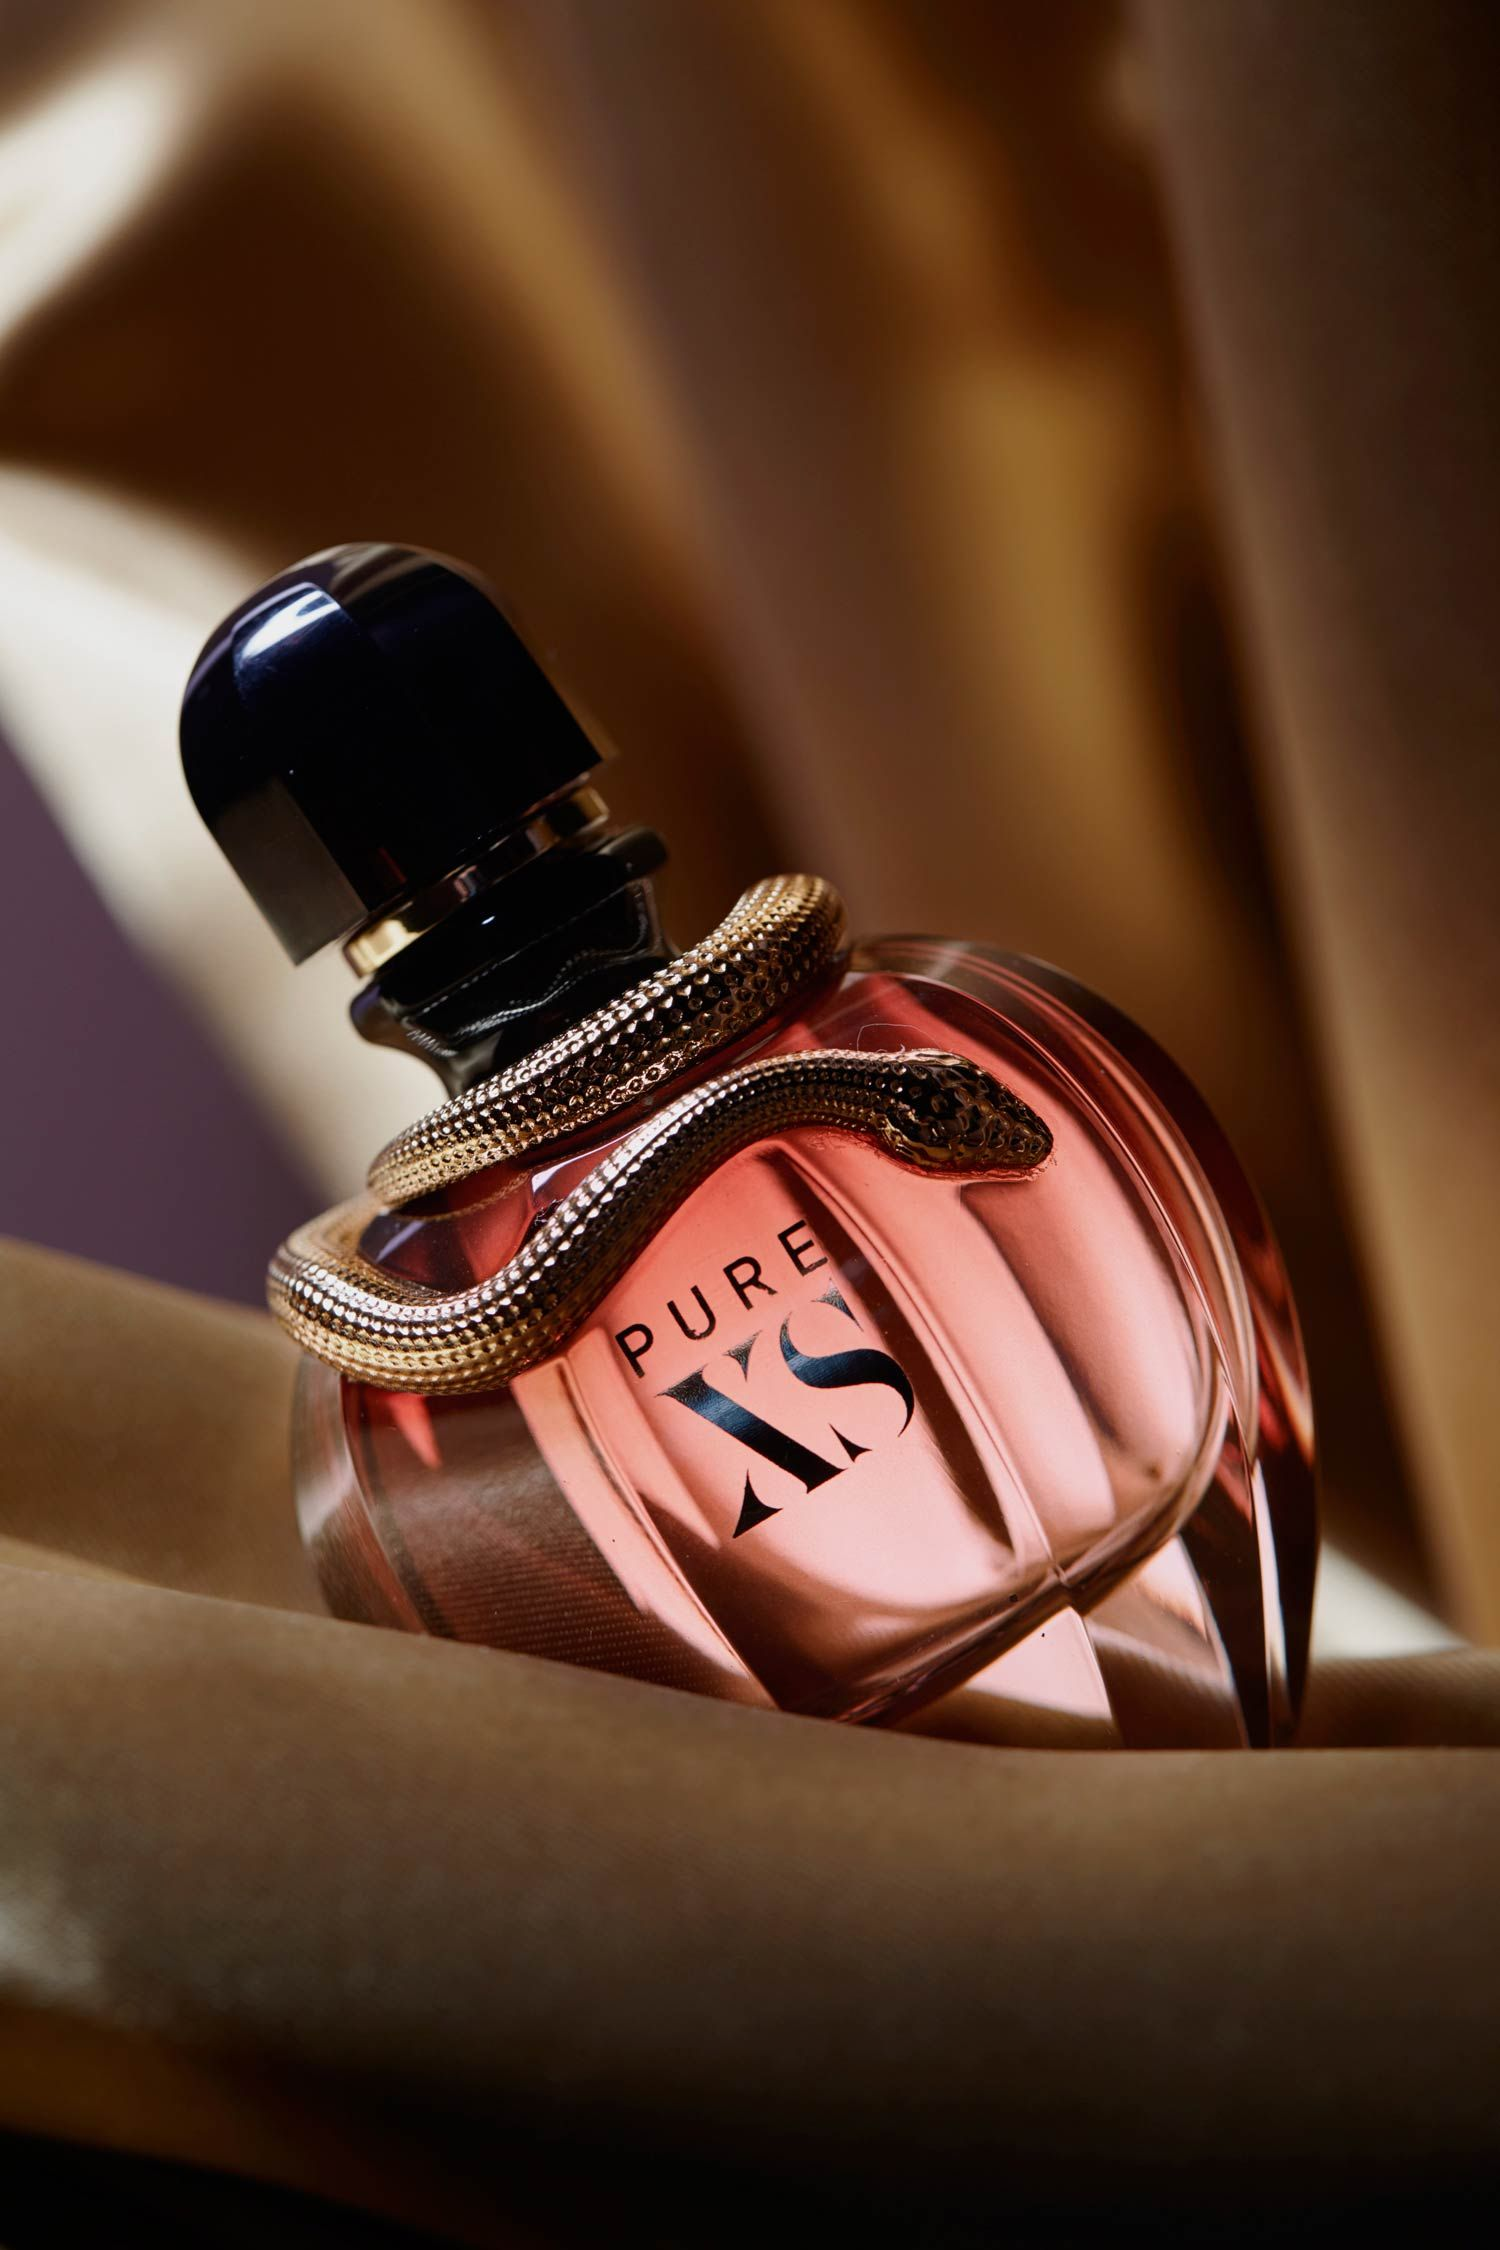 Paco Rabanne Pure Xs For Her Lovelies In 2018 Pinterest Evelyn Parfum Riject Products Fragrance